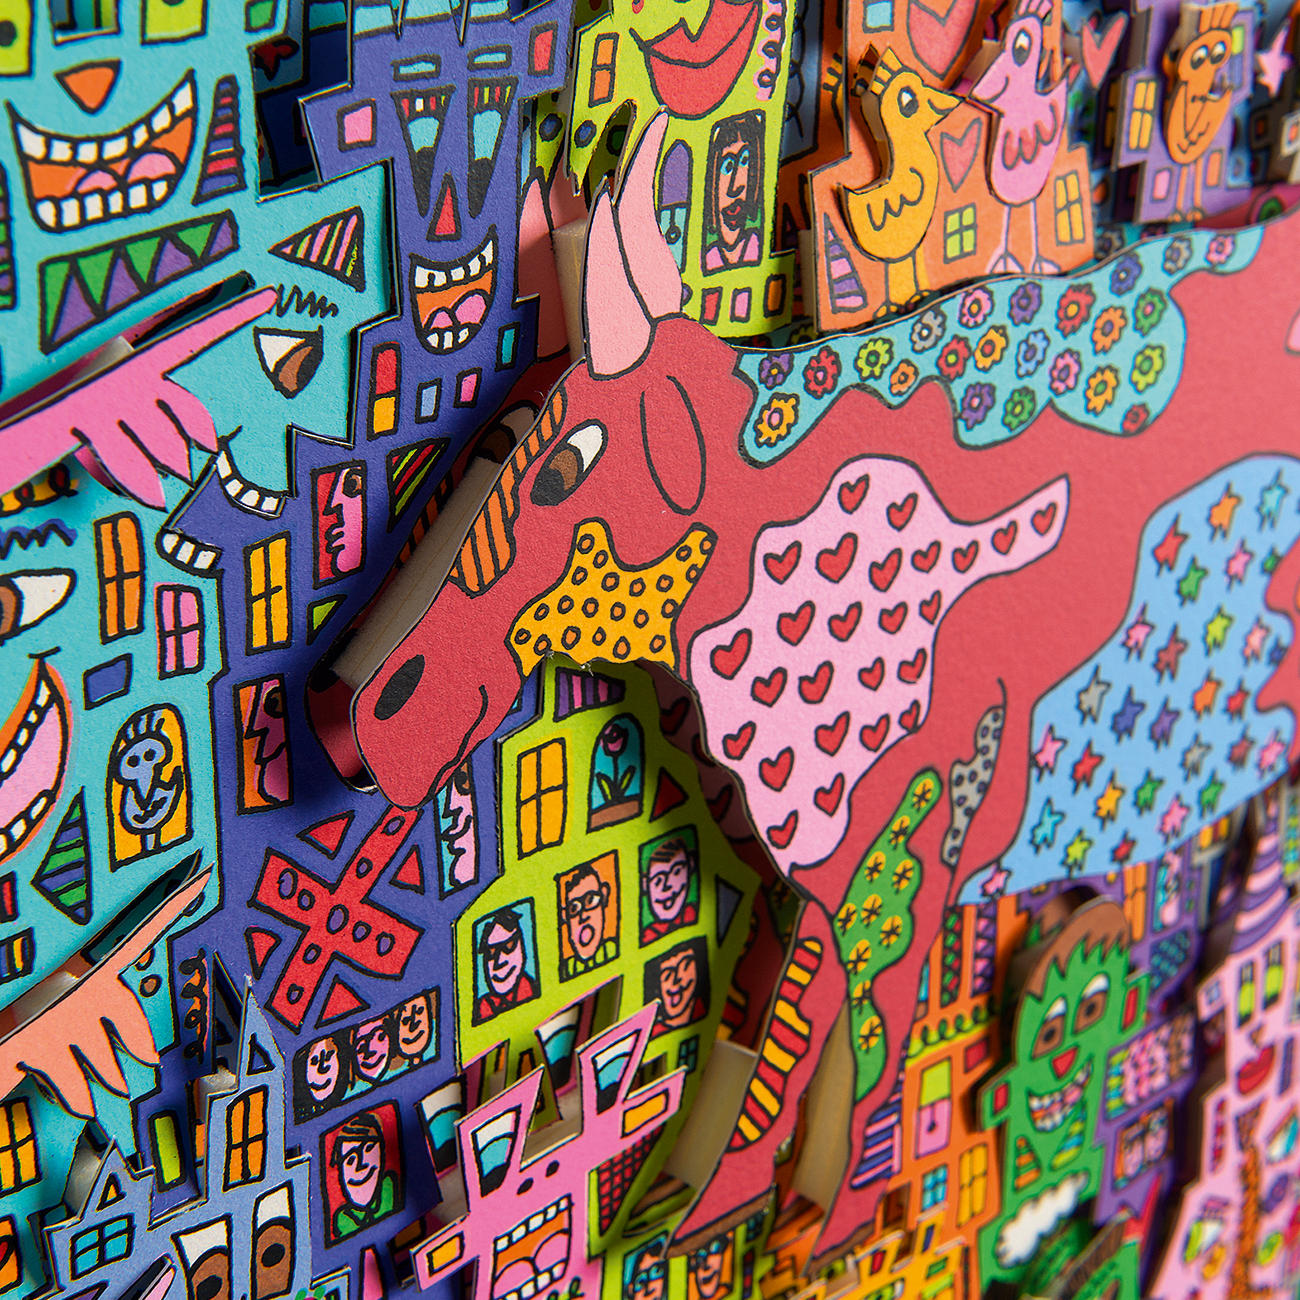 James Rizzi – Look – There are Cows in the City, 2000